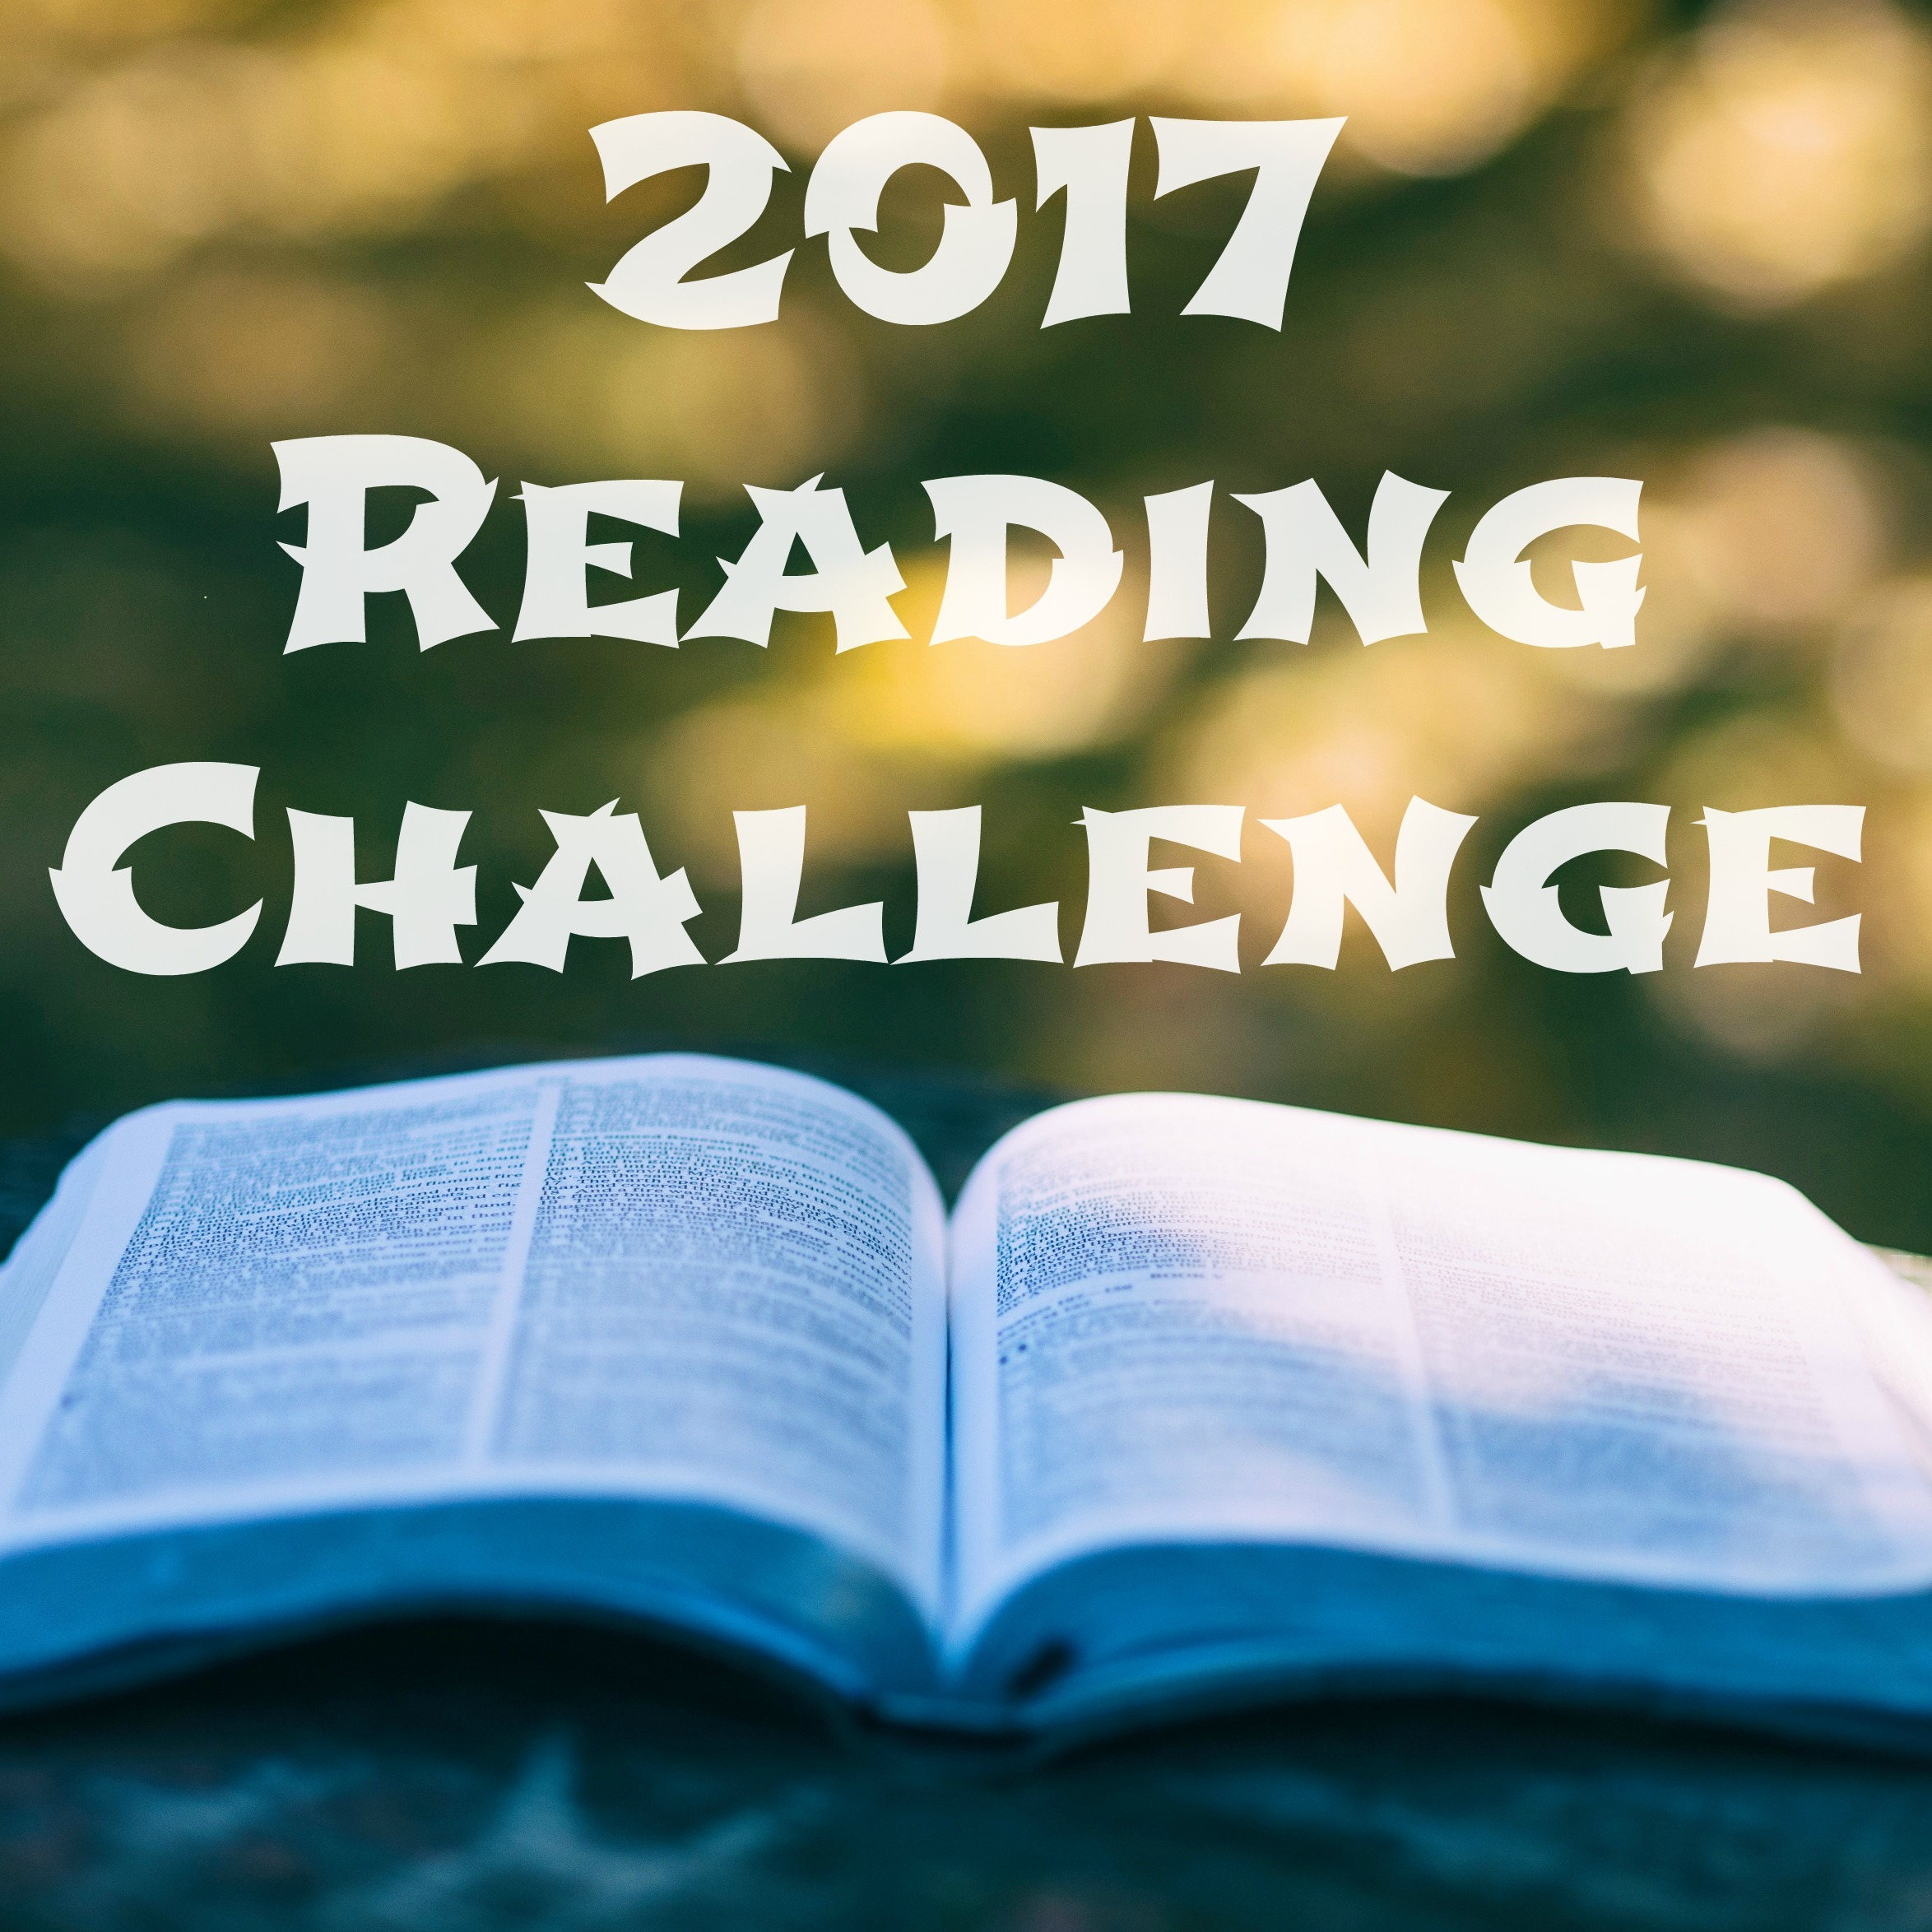 2017 Reading Challenge: A book written during the 1990s.